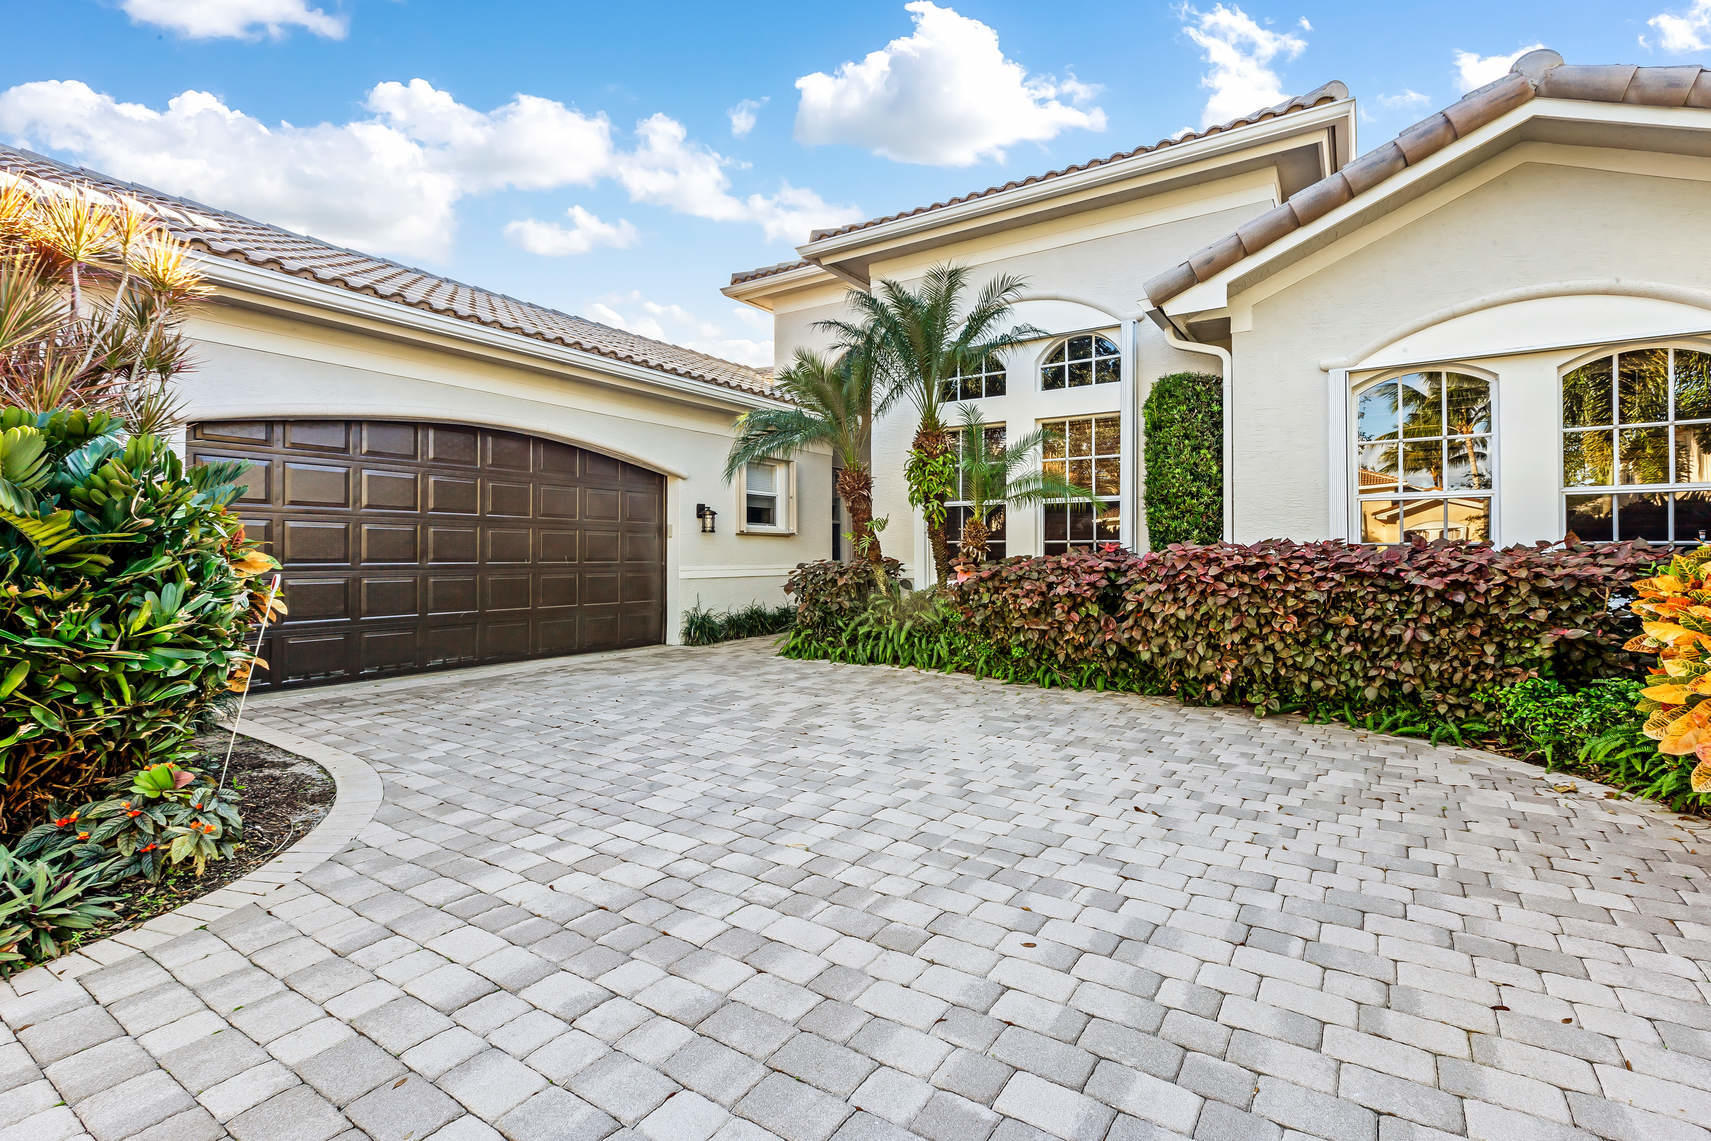 11185 Brandywine Lake Way  Boynton Beach, FL 33473